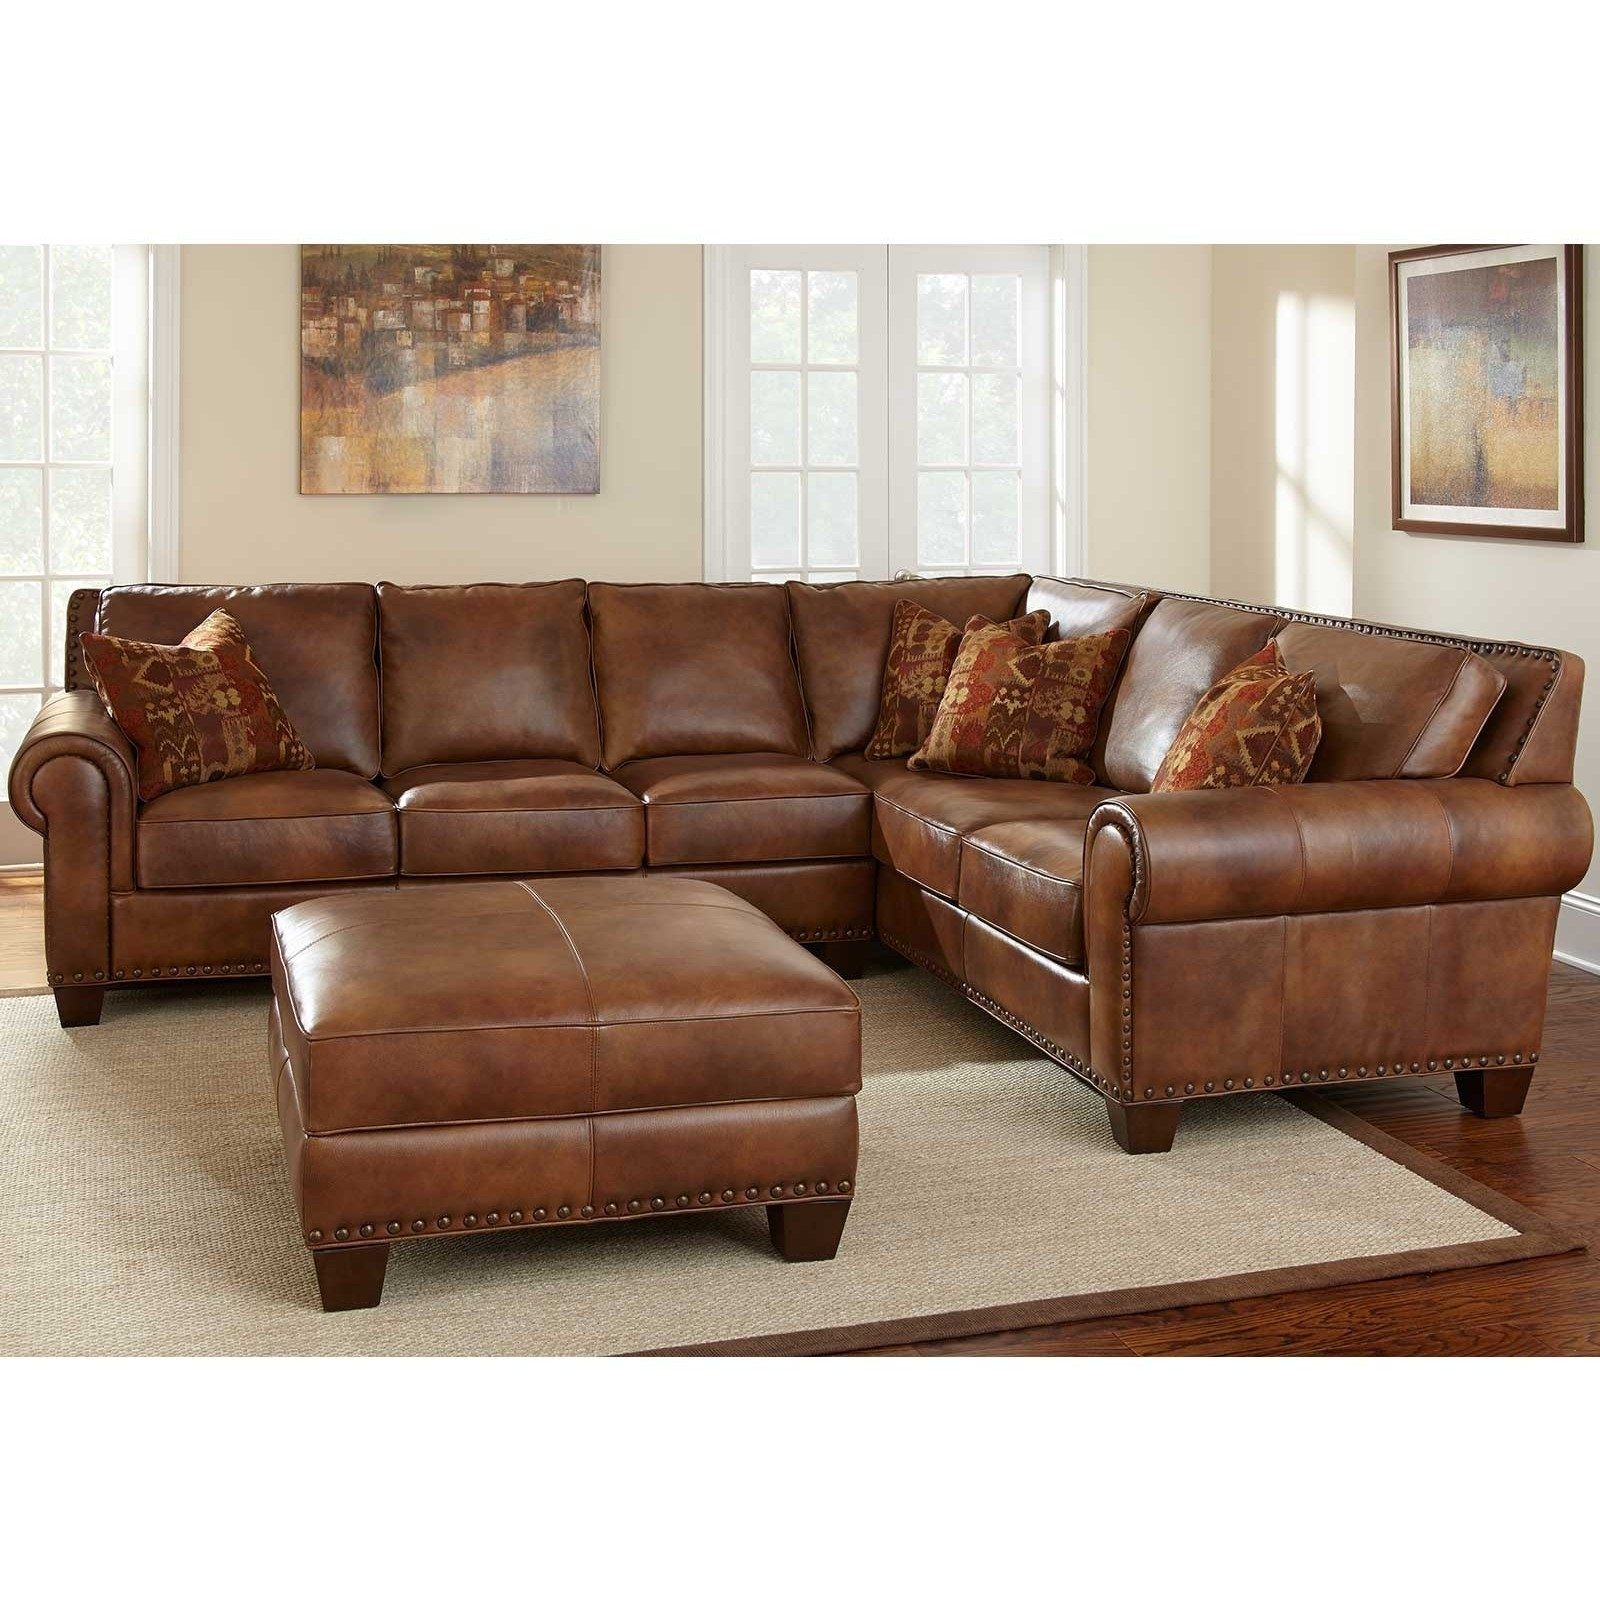 Sofas Center Sofa On Sale Second Hand Classic Sofas Or Clearance For Classic Sofas For Sale (Image 10 of 15)